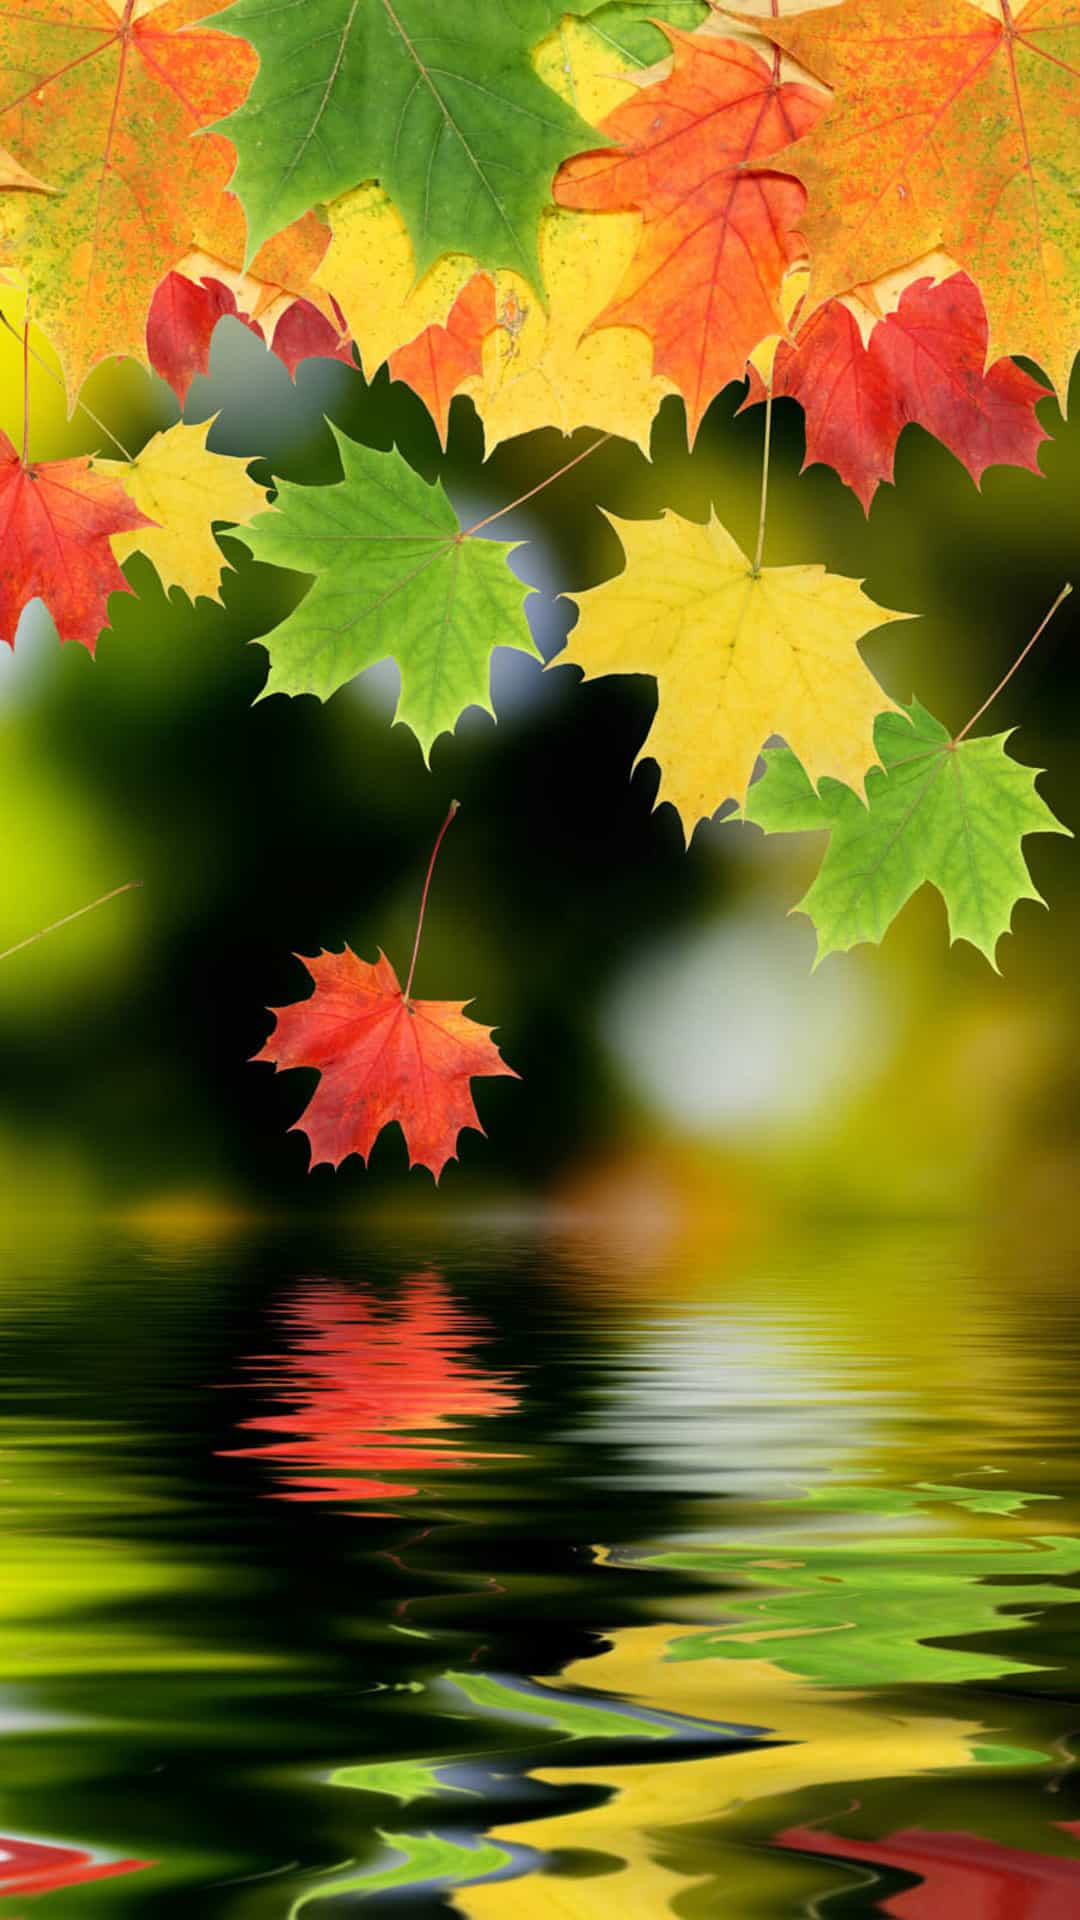 Autumn Maple Leafs Android Wallpaper